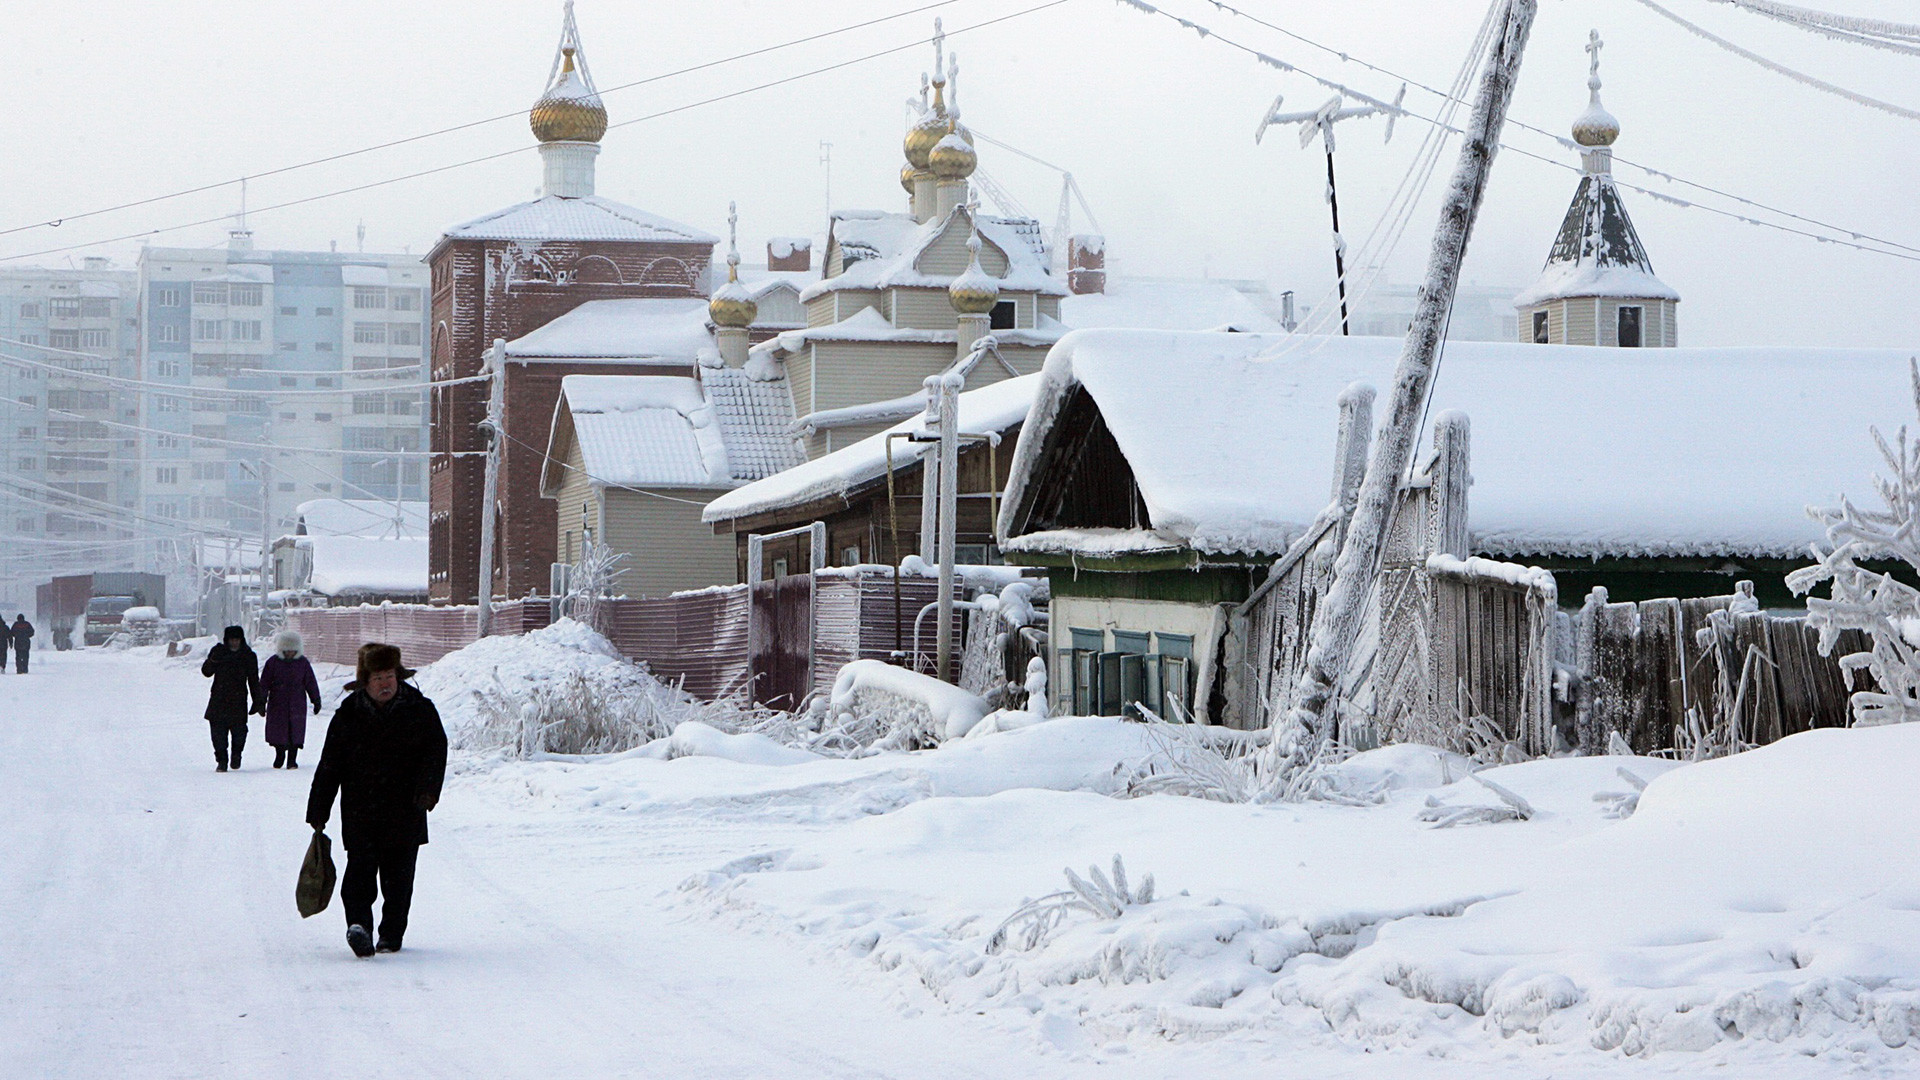 The old town in winter.